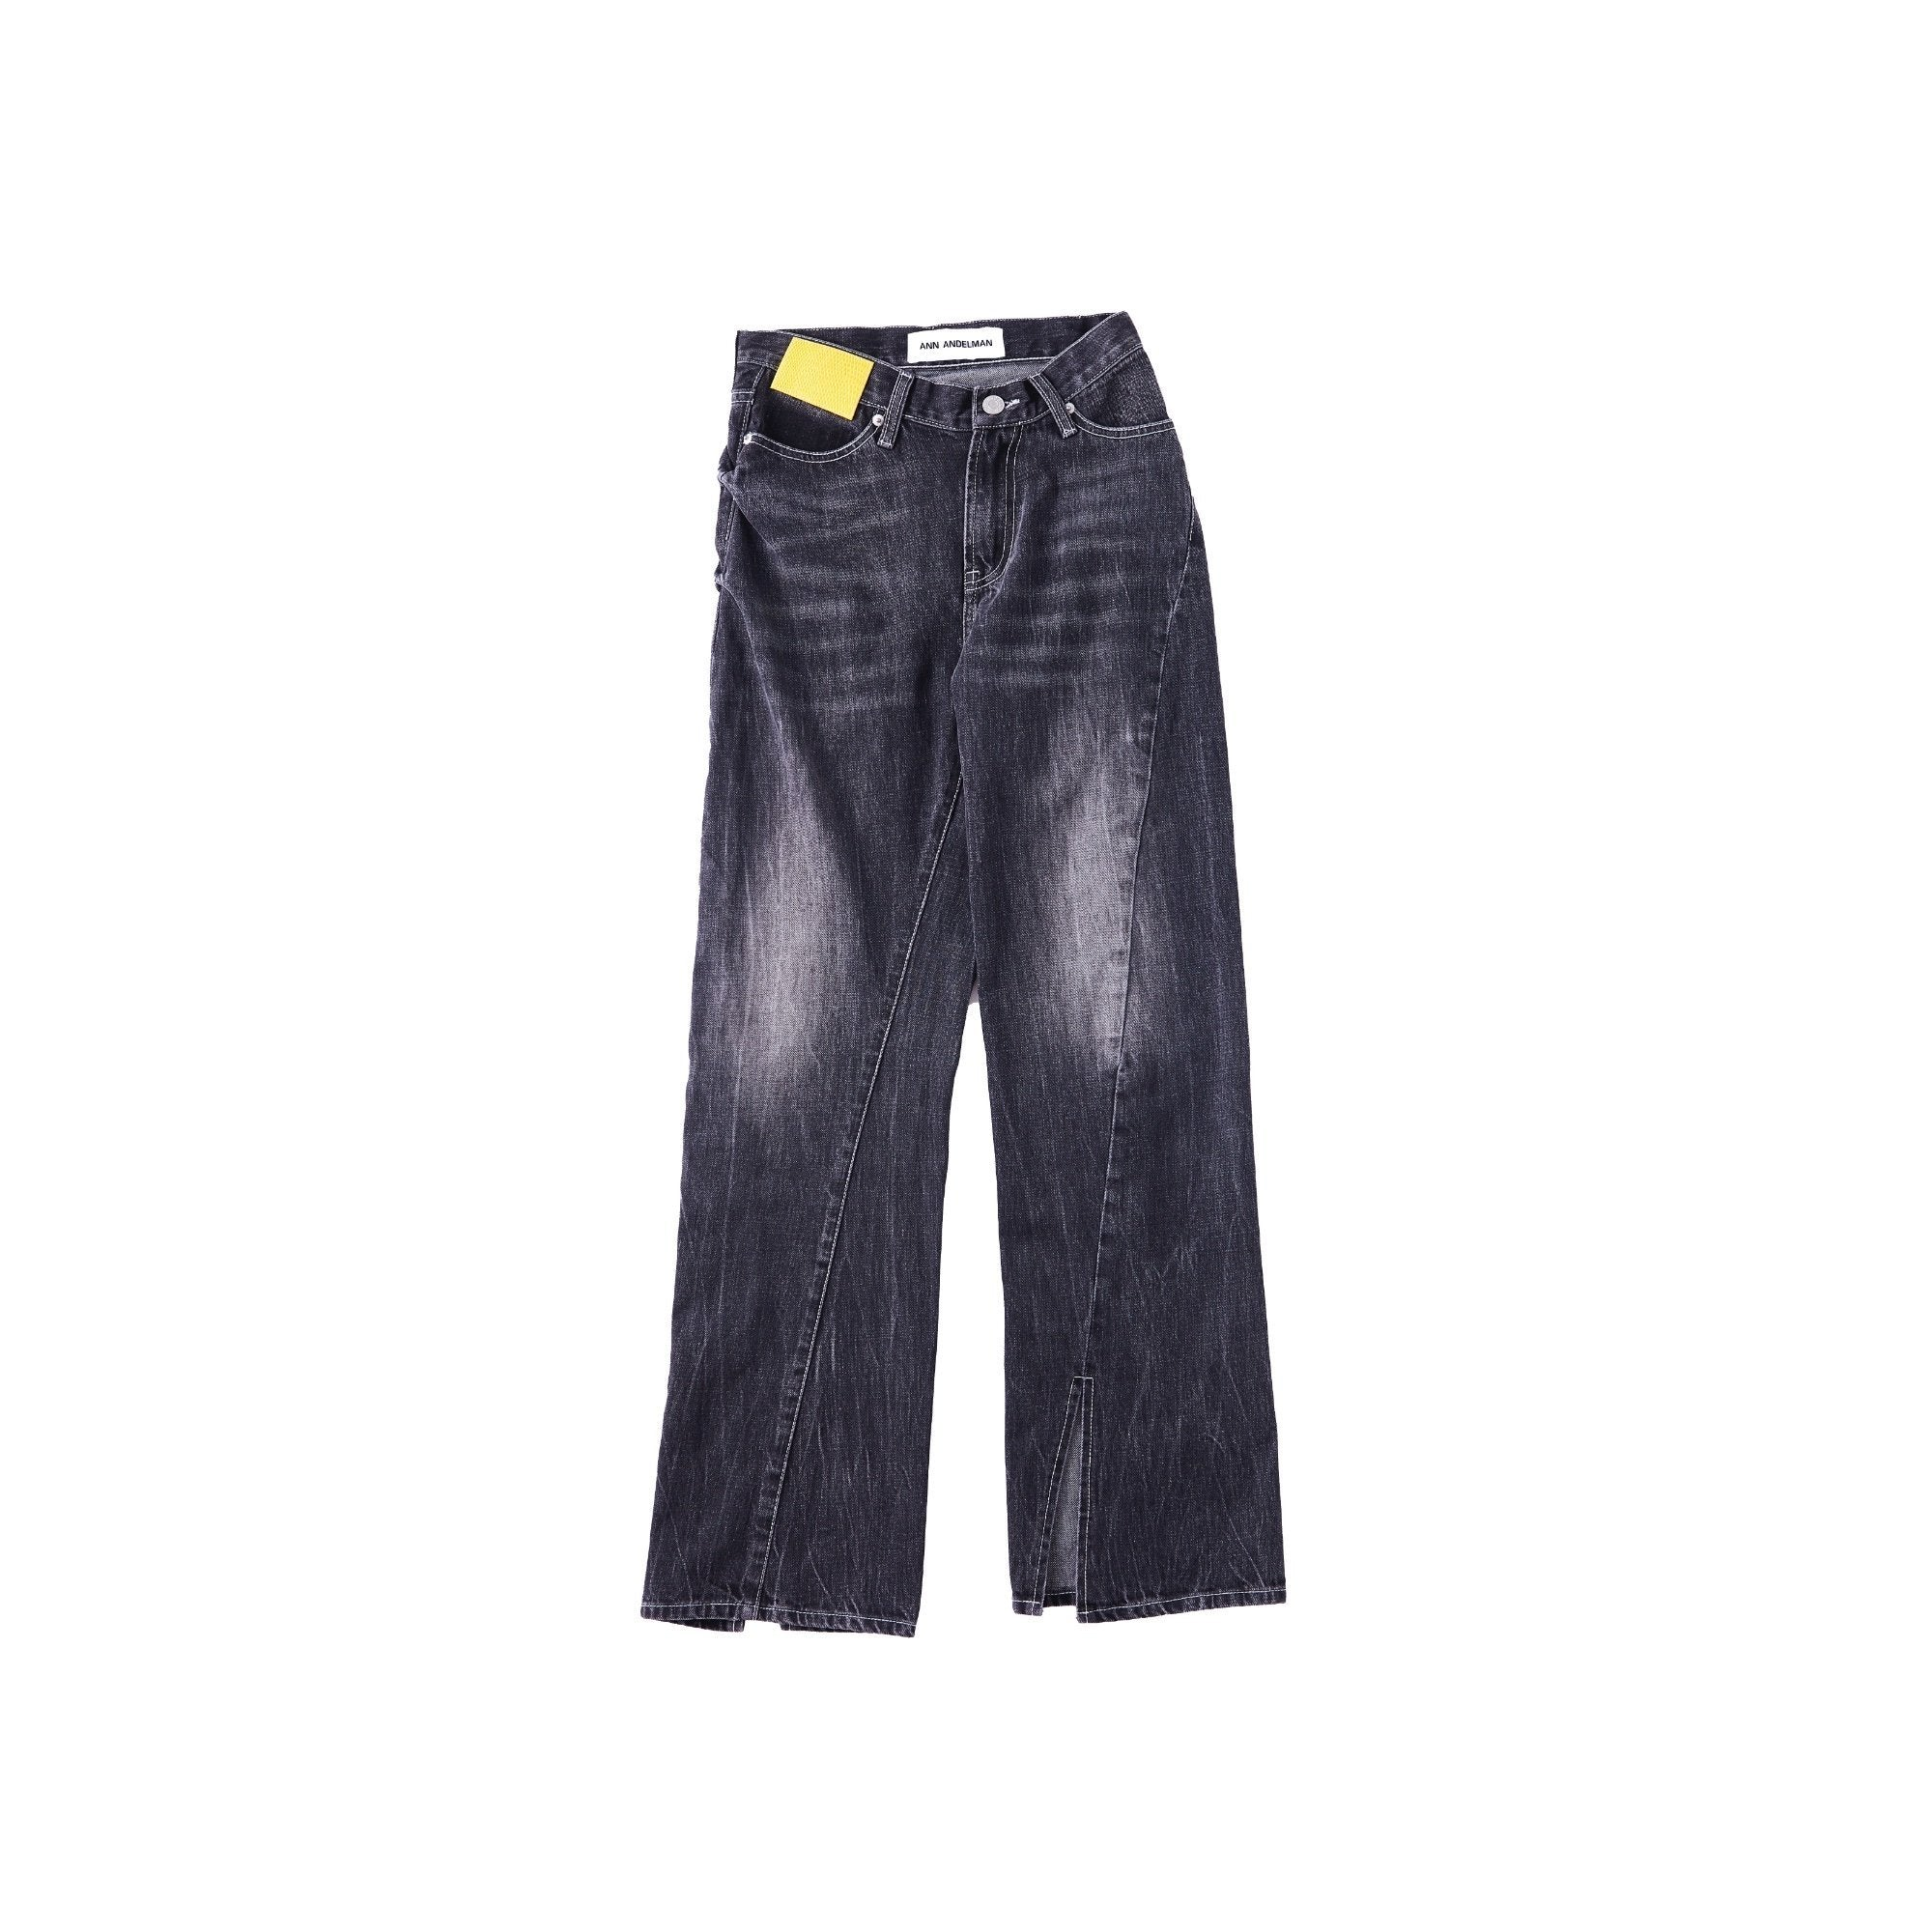 ANN ANDELMAN Black Lizard Patch Jean | MADA IN CHINA